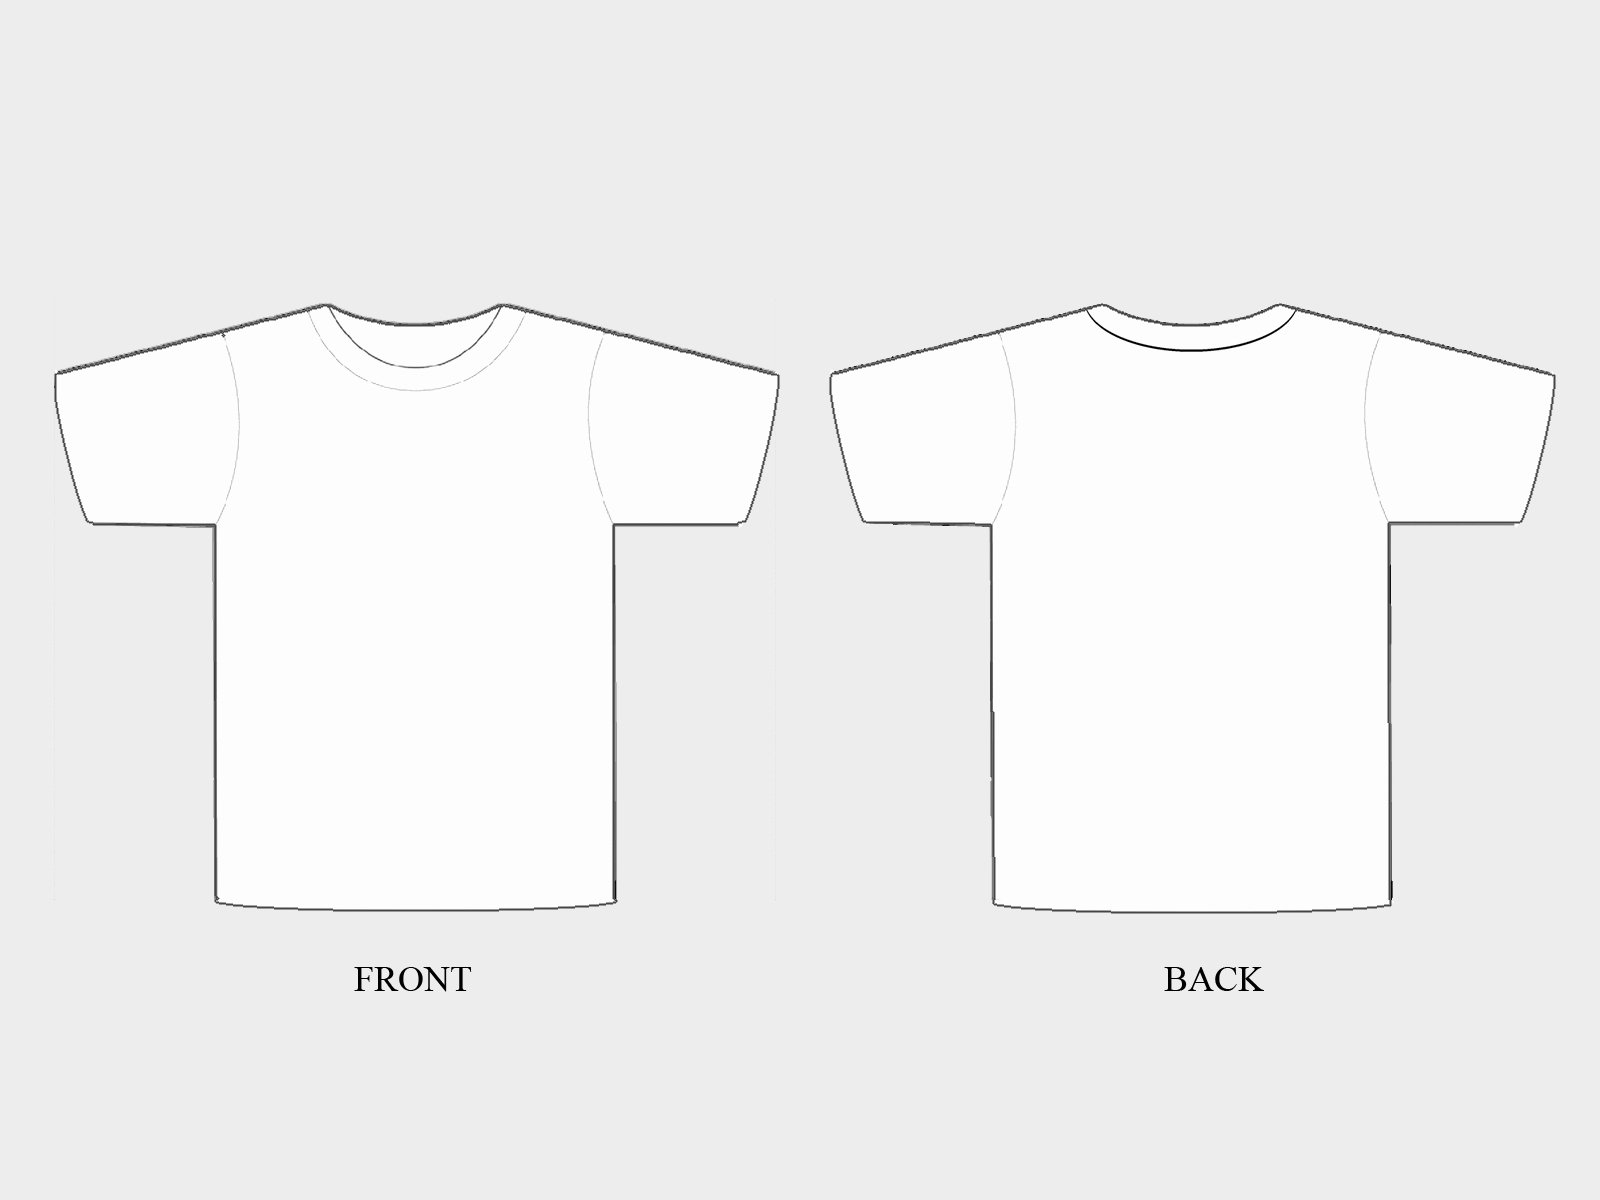 T Shirt Template Pdf Awesome the Treachery Of T Shirts